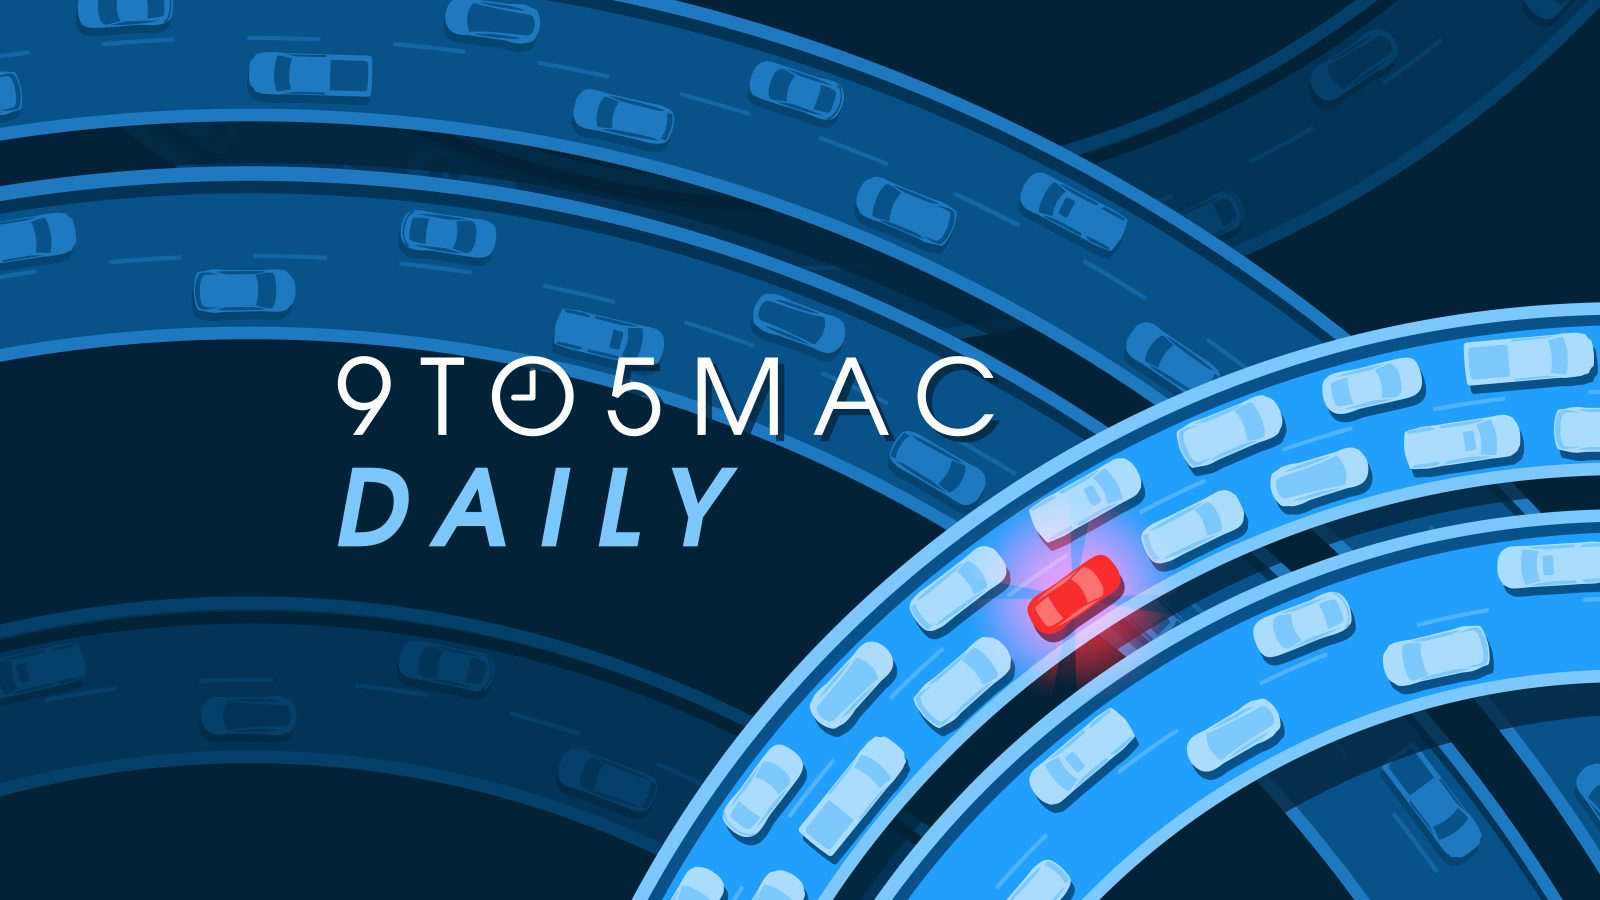 010: HomePod FCC approval, Apple hiring data scientists, iOS 11 adoption | 9to5Mac Daily 001-homekit-at-ces-homepod-launch-iphone-se-2-and-safari-spectre-fixes-9to5mac-daily